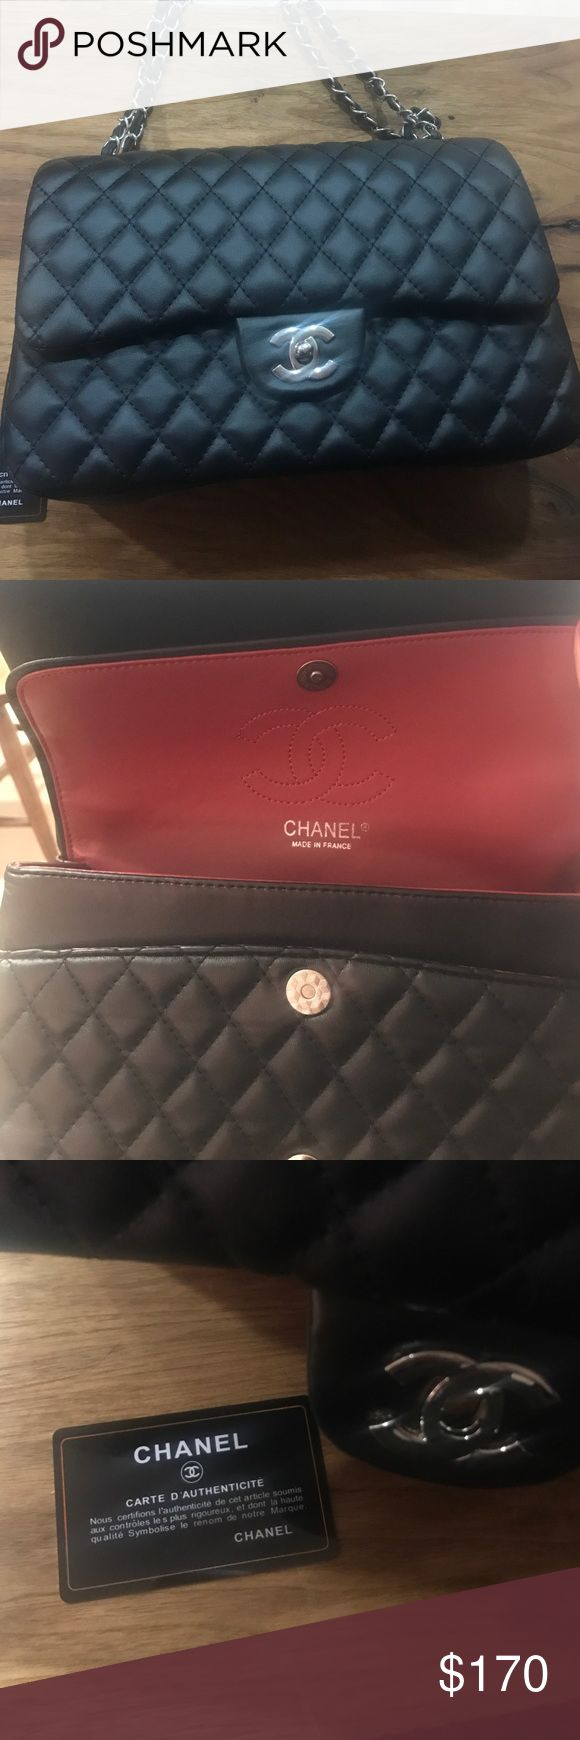 Chanel double flap bag New Chanel black double flap bag.  Not auth (price reflects).  Includes authenticity card chanel Bags